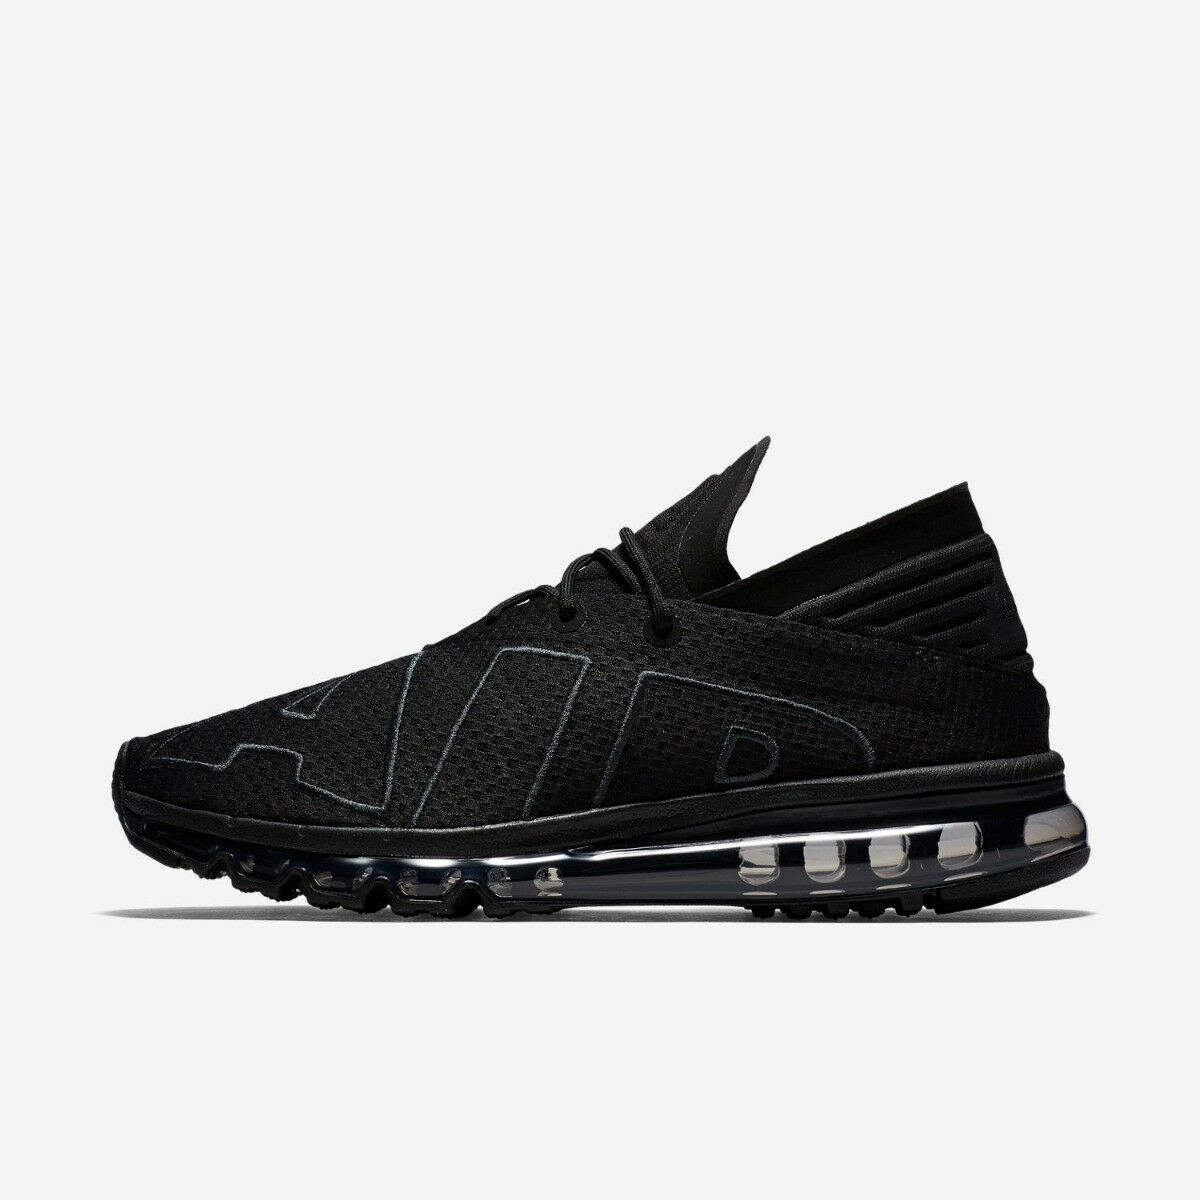 Nike Air Max Flair Mens Trainer shoes Size 7.5 9 University gold Black   -